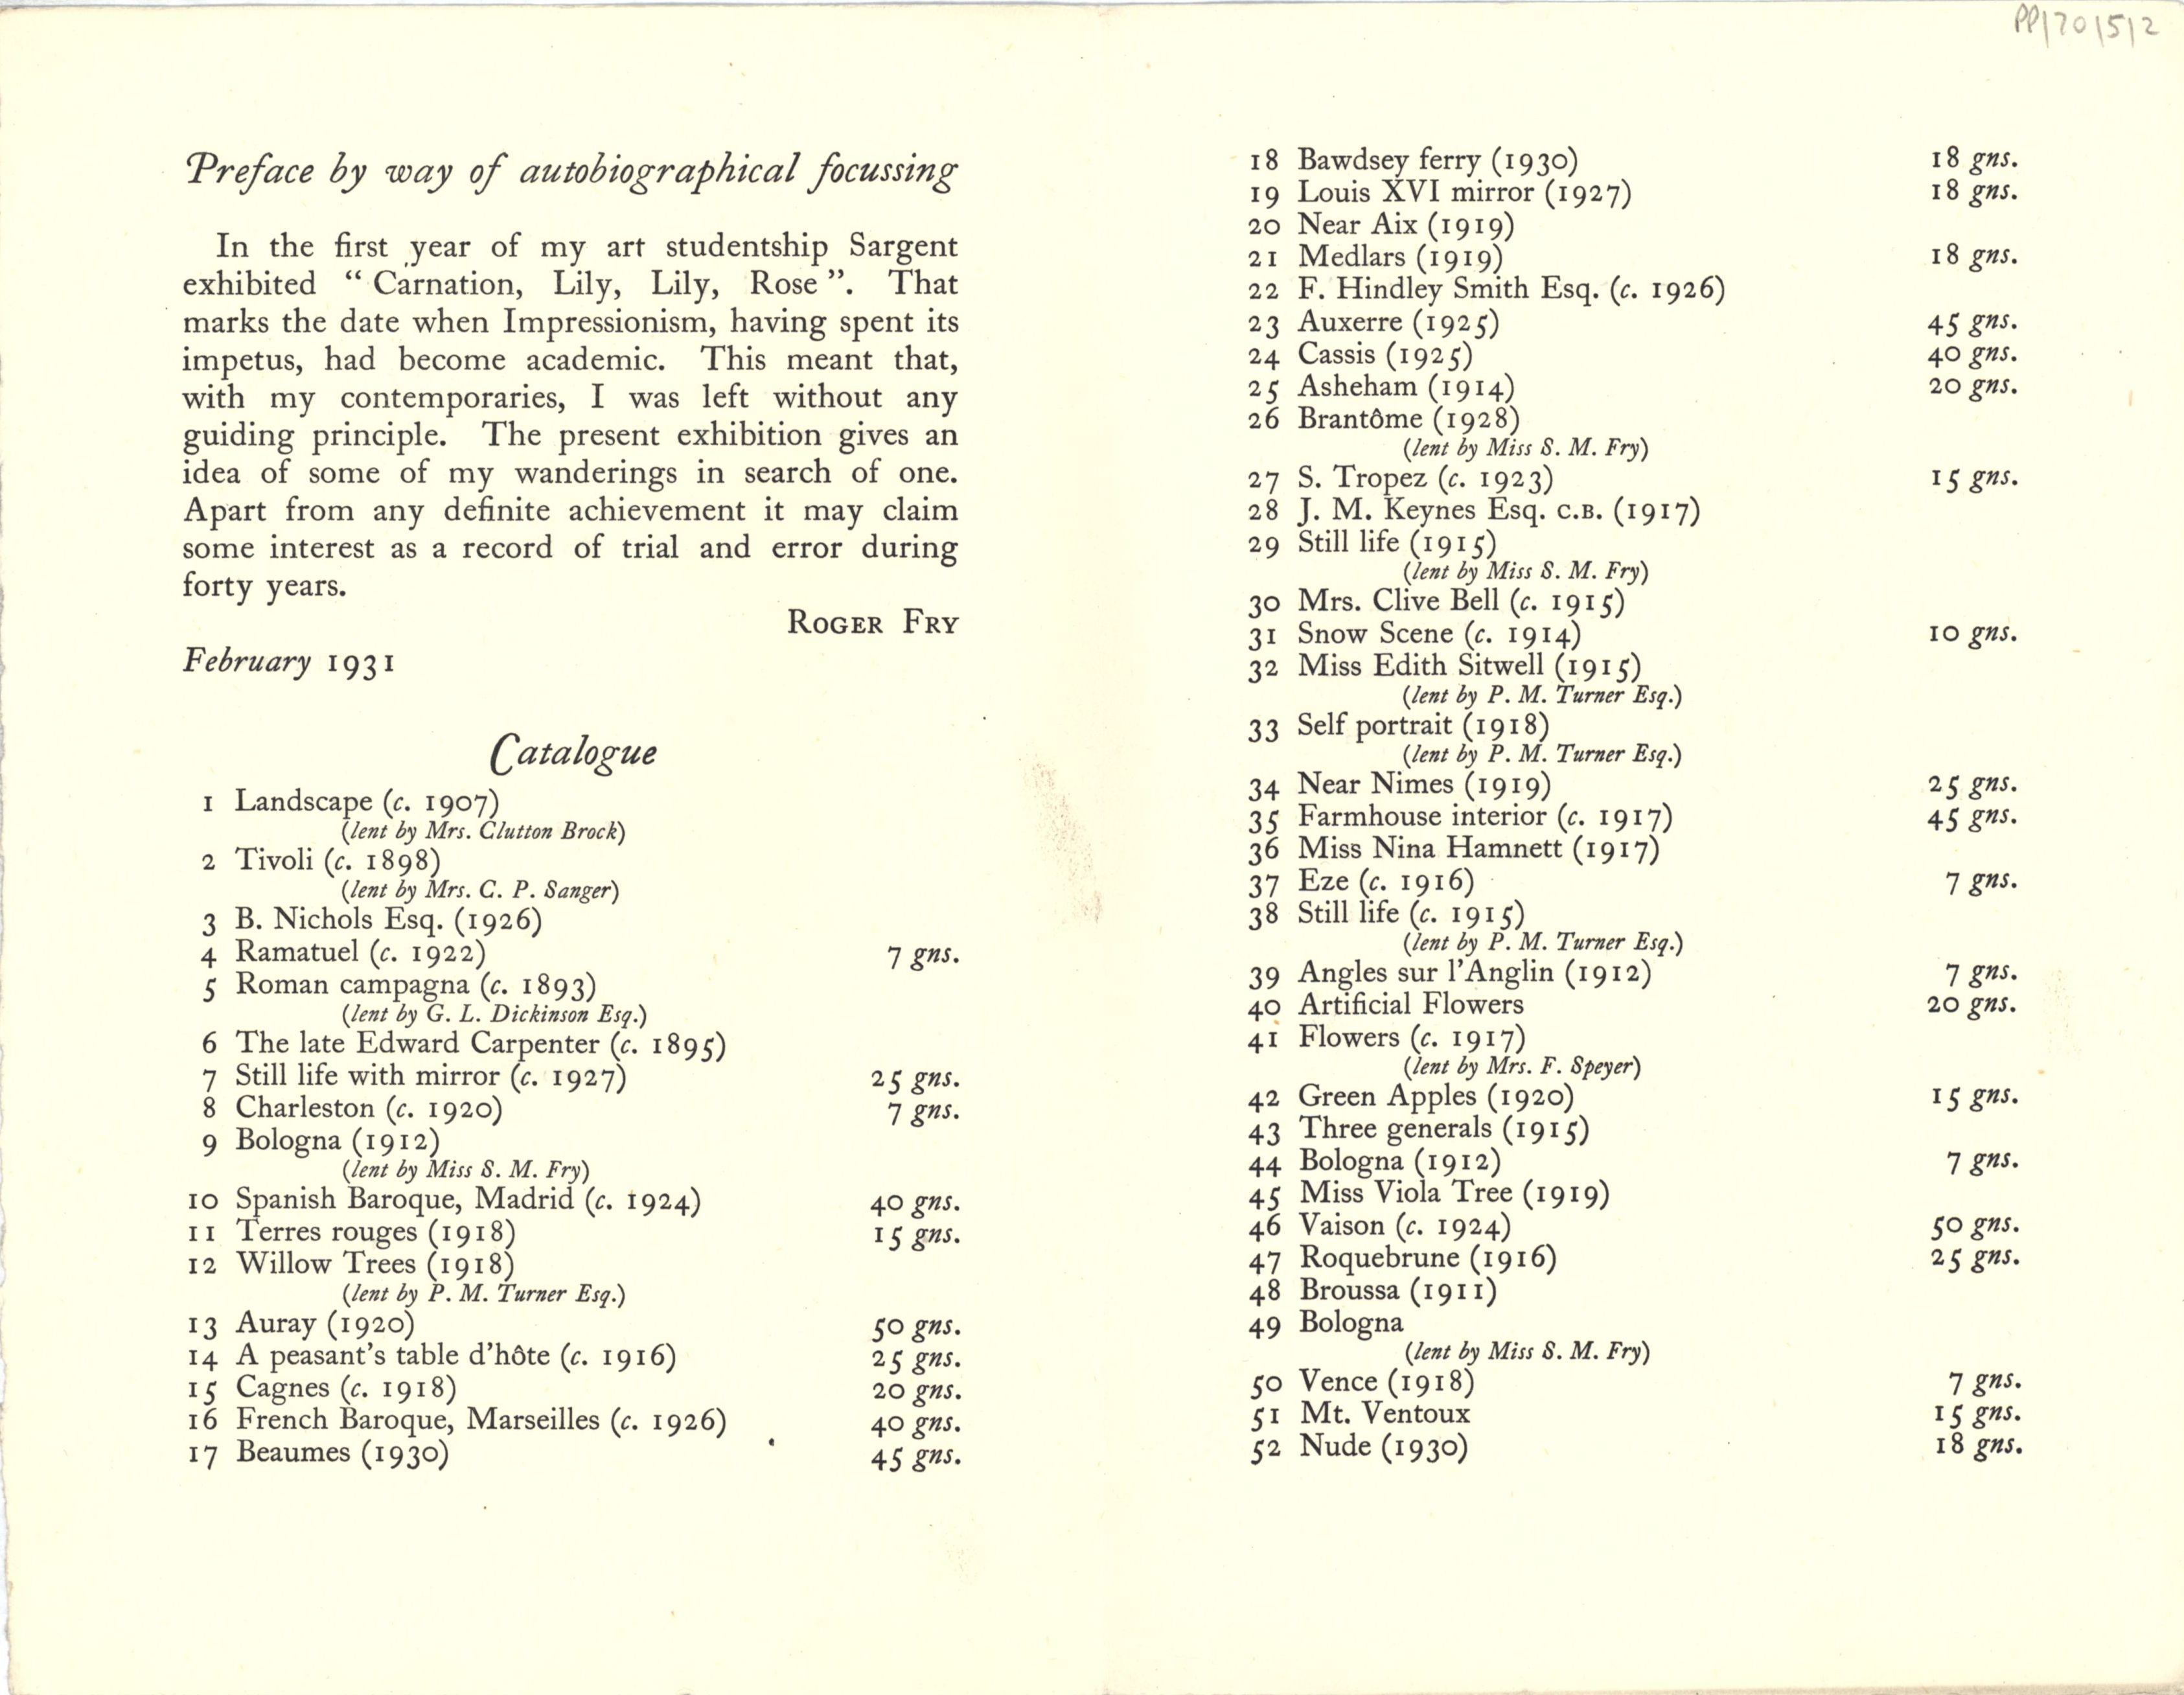 'Roger Fry (retrospective exhibition of paintings)' catalogue, 1931. [JMK/PP/70/5]